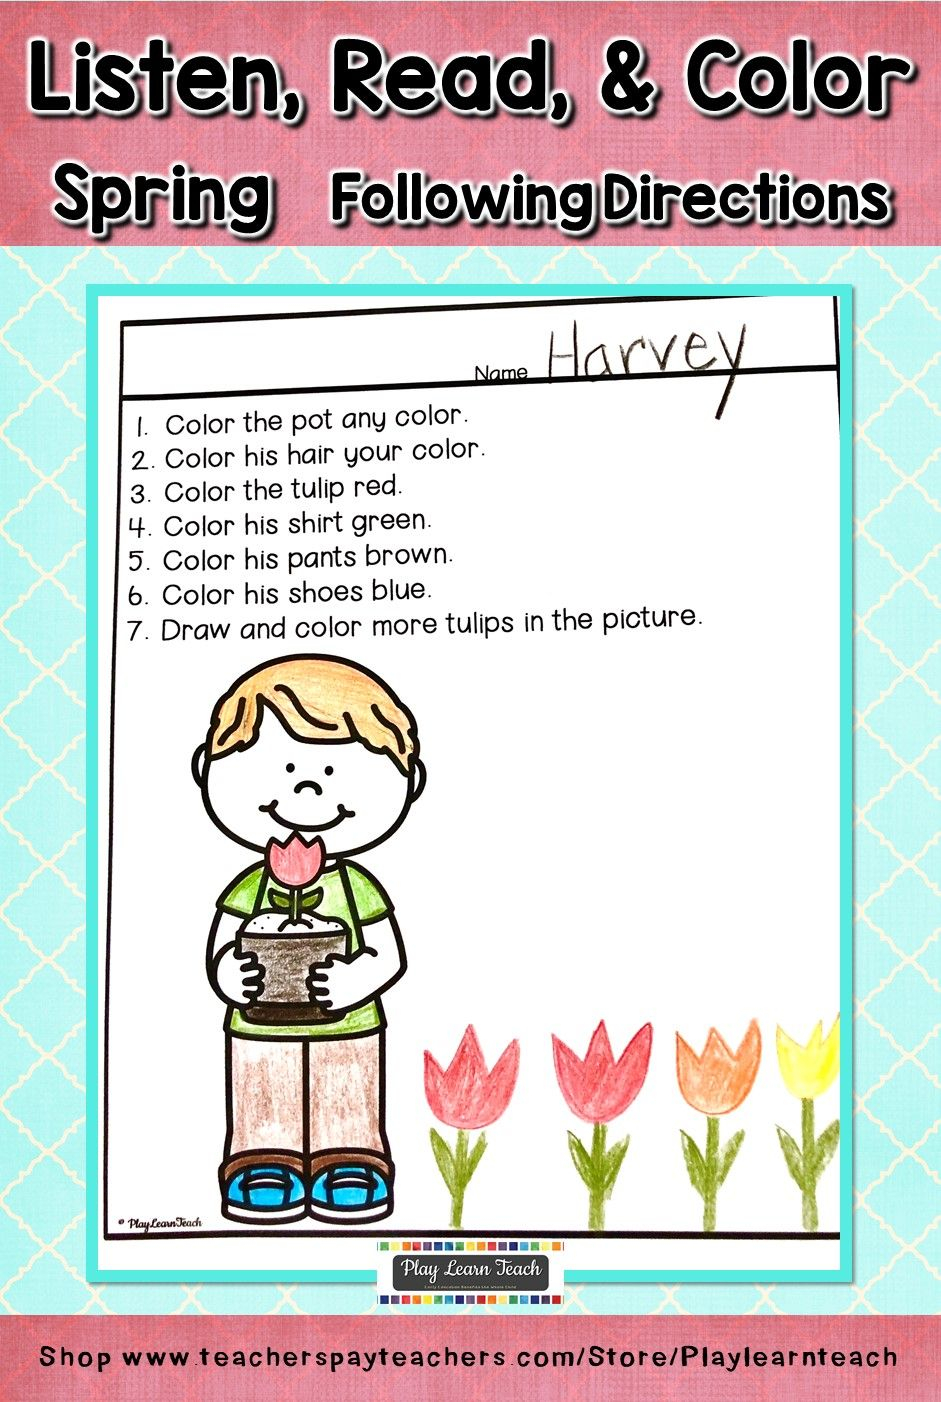 Listen Read Color Spring Following Directions | Writing